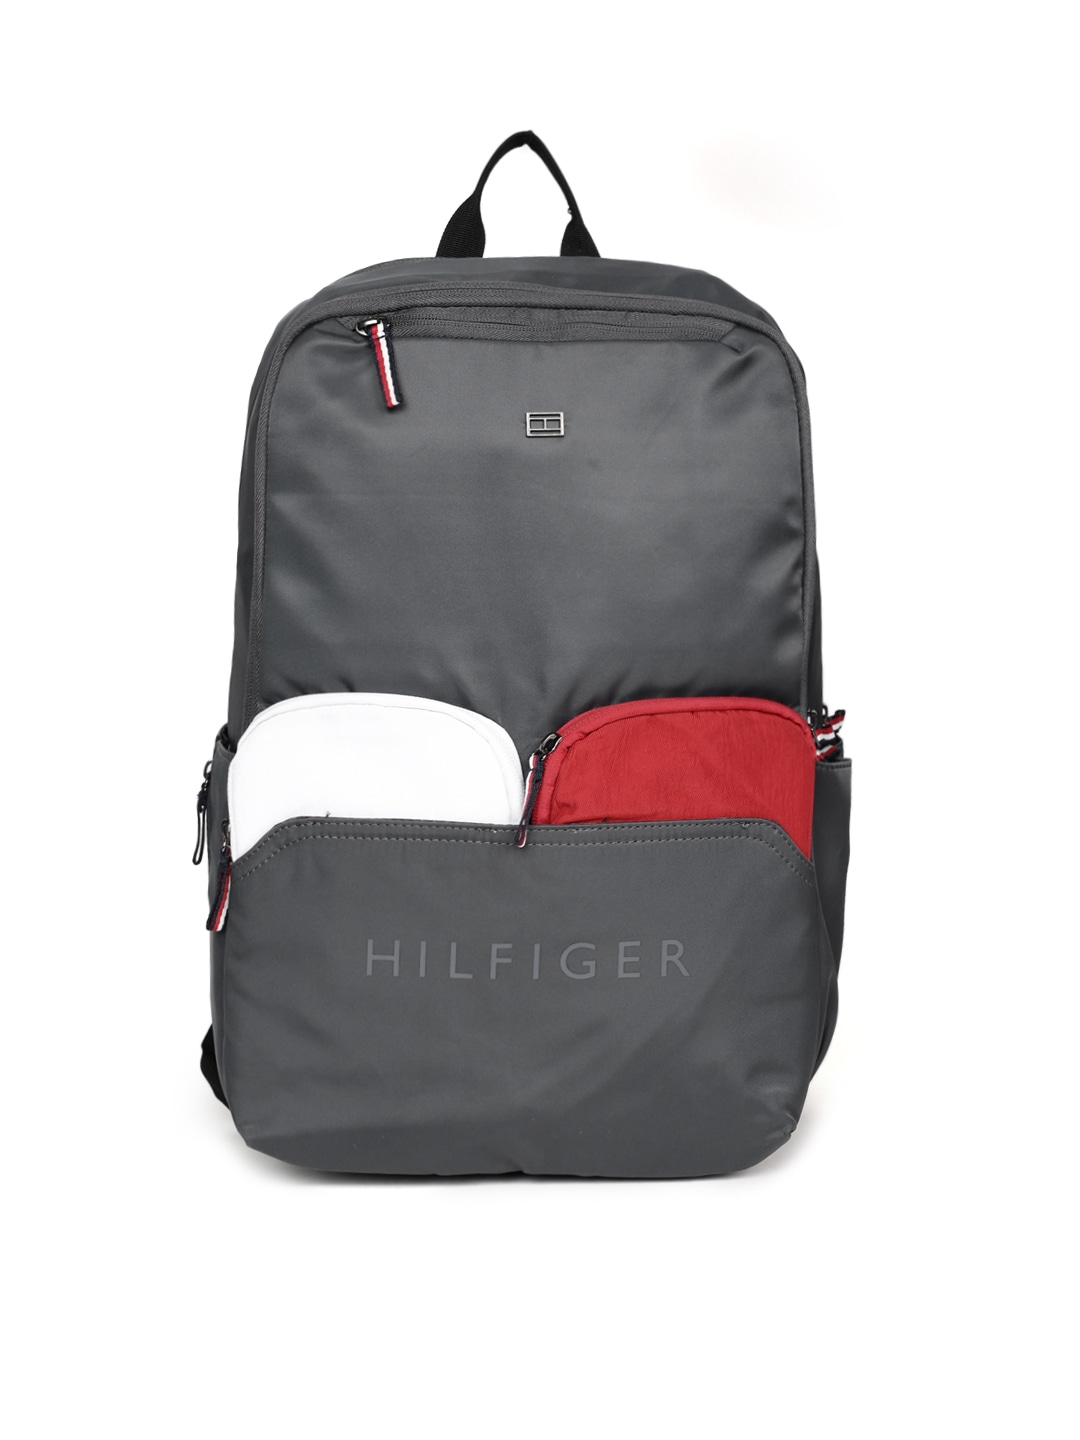 95cae72ed Tommy Hilfiger Backpack Backpacks Laptop Bags - Buy Tommy Hilfiger Backpack  Backpacks Laptop Bags online in India